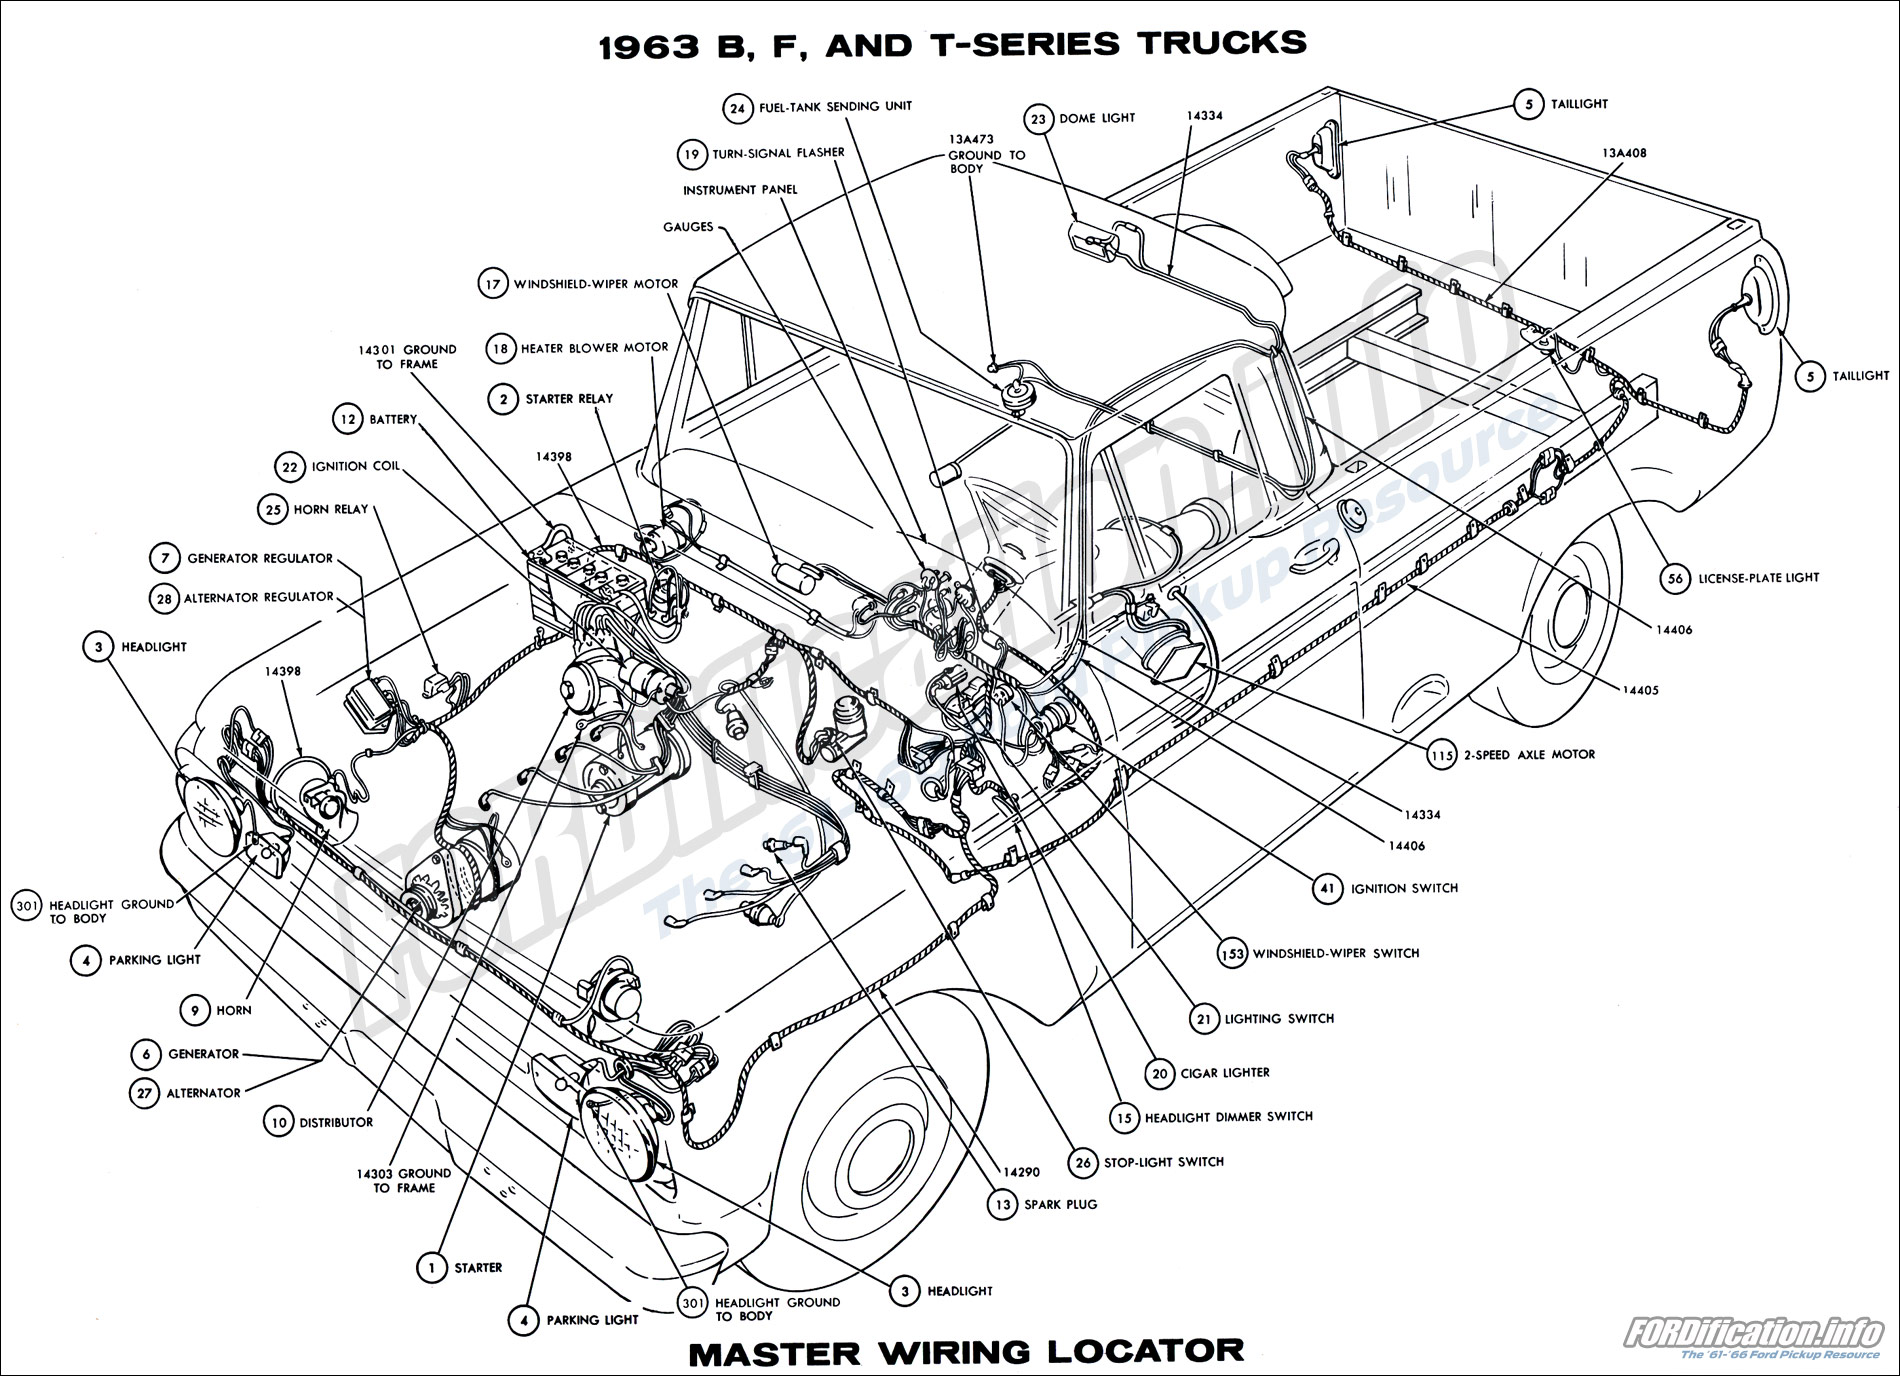 1963 ford f100 wiring diagram electrical wiring diagrams rh cytrus co ford f100 wiring diagram 1974 ford f100 wiring diagram 1974